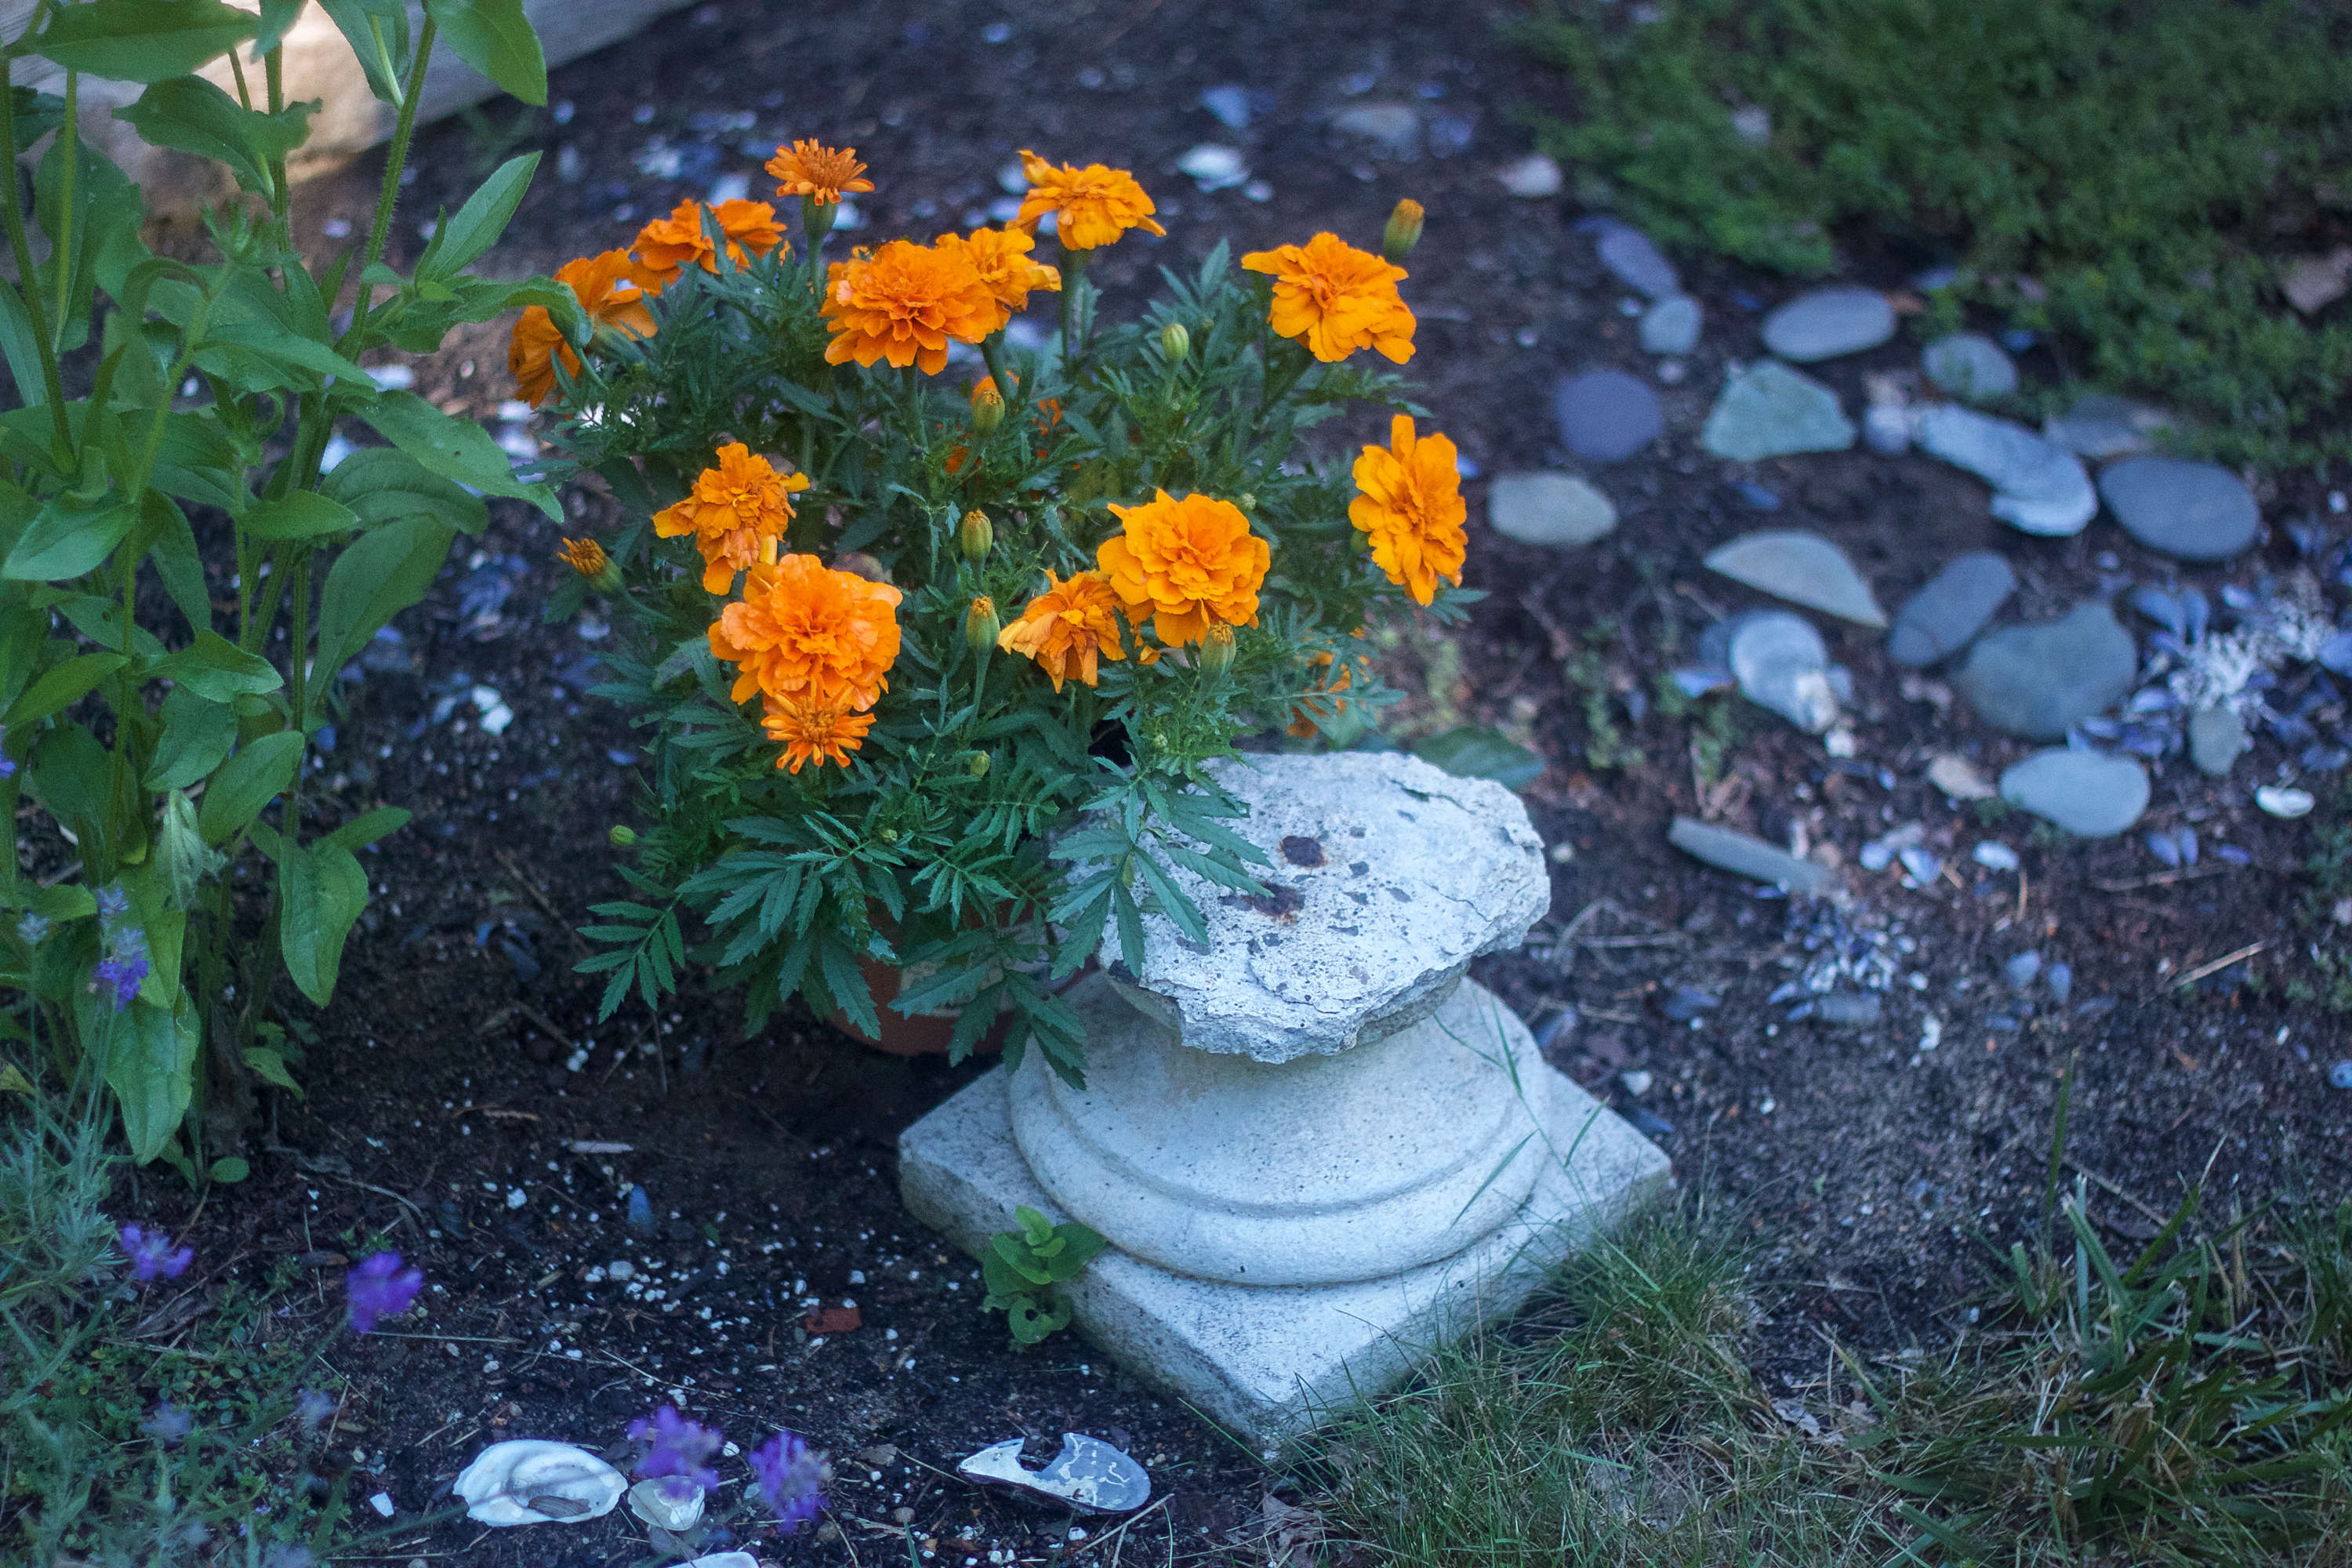 In the herb garden, a broken bird bath is not cast off. Instead it makes a striking companion to some cheerful marigolds.